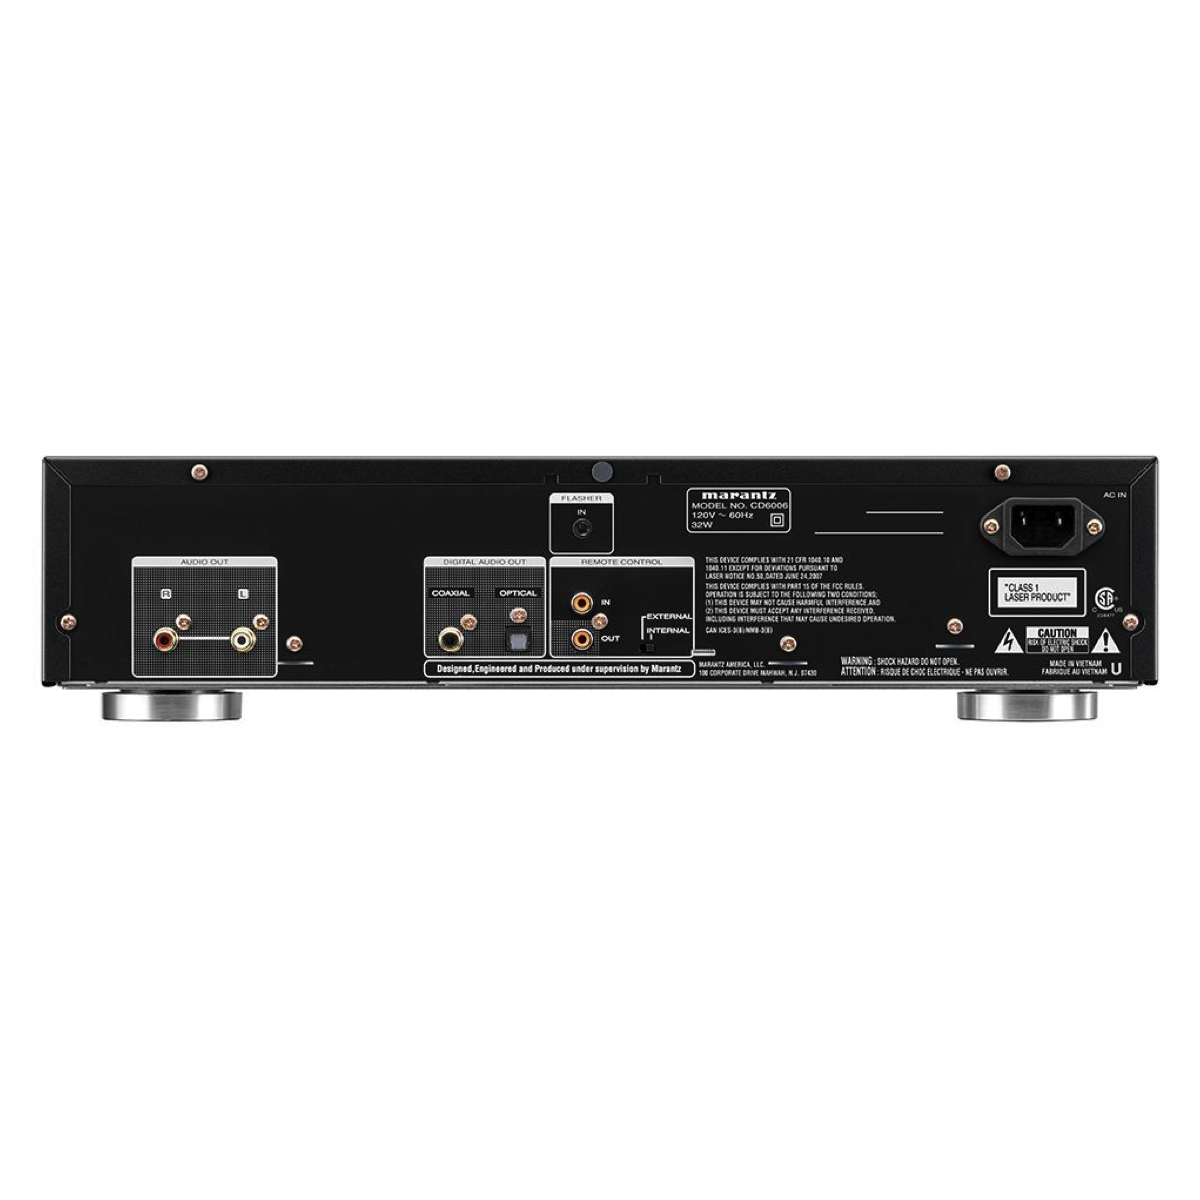 Marantz CD6006 - CD player, Marantz, Digital players & streamers - Auratech LLC